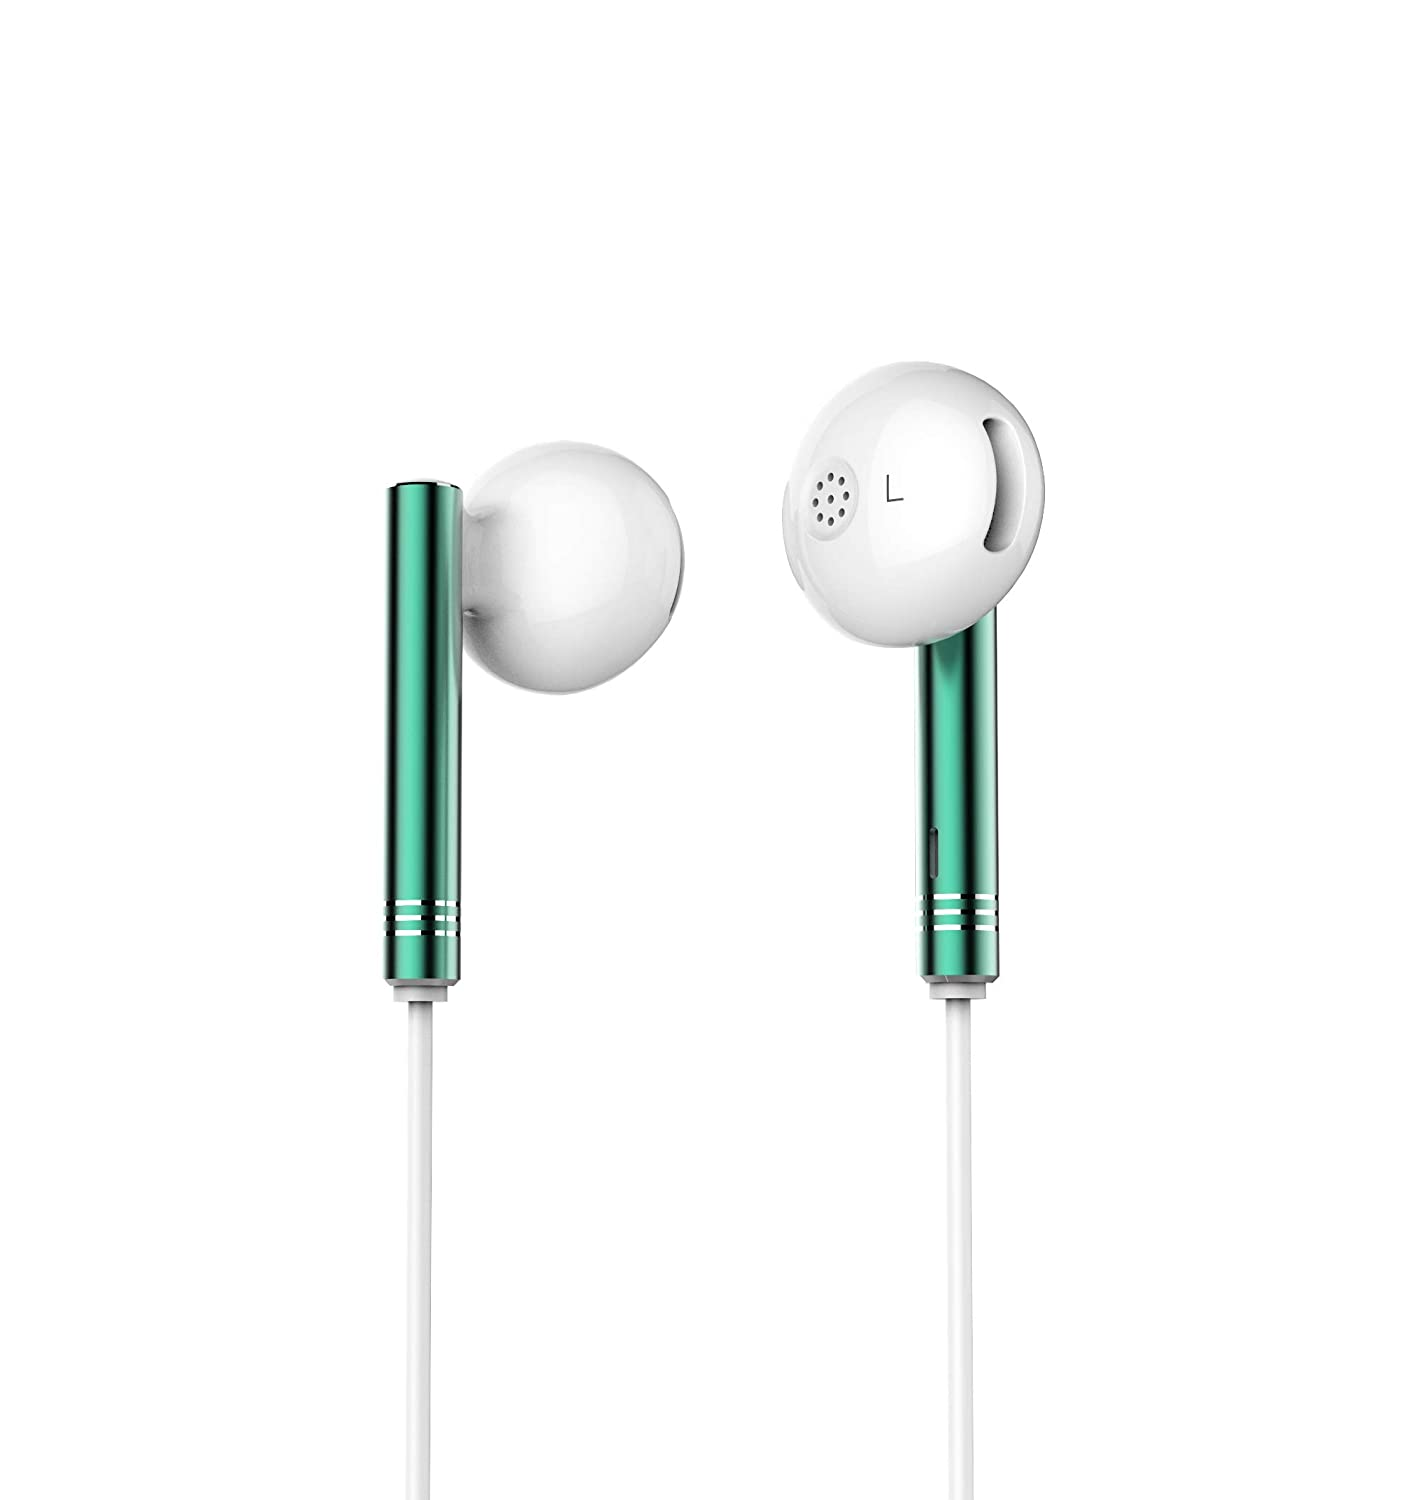 [Apply coupon] SNOKOR by Infinix Bass Drops Earphones (Green) with 14.3mm Large Bass Boost Driver, Trendy Design and Call/Music/Voice Assistant Control